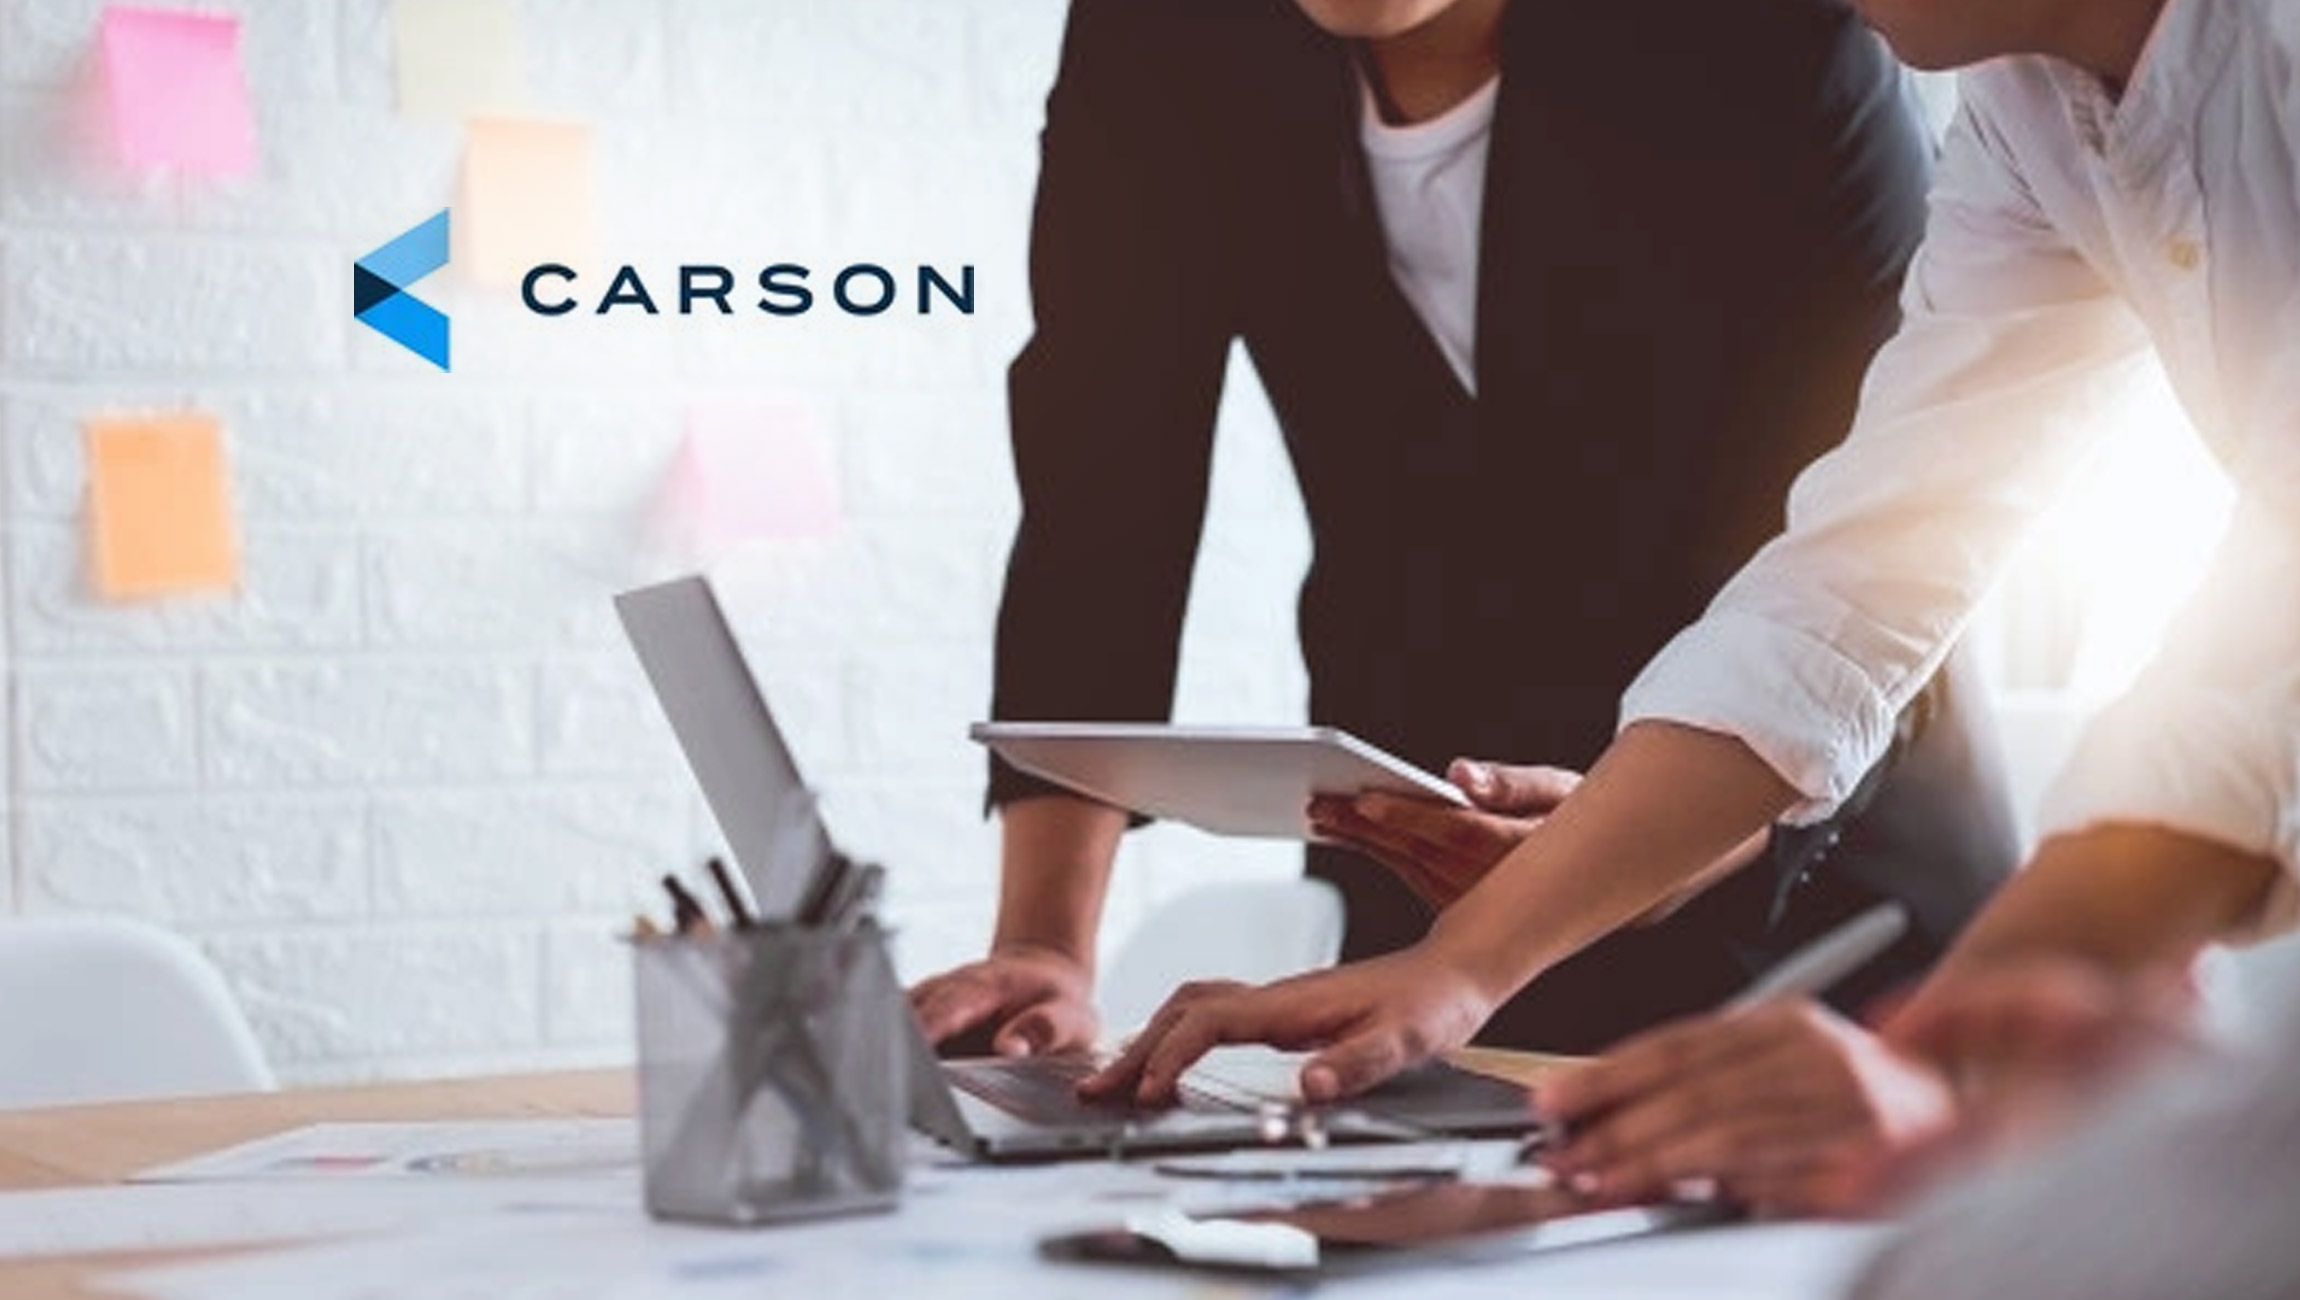 Female-Advisor-Growth-Study-by-Carson-Group-and-Hidden-Insights-Reveals-Stark-Differences-in-Leadership-Styles_-Growth-Drivers-and-Sales-Training